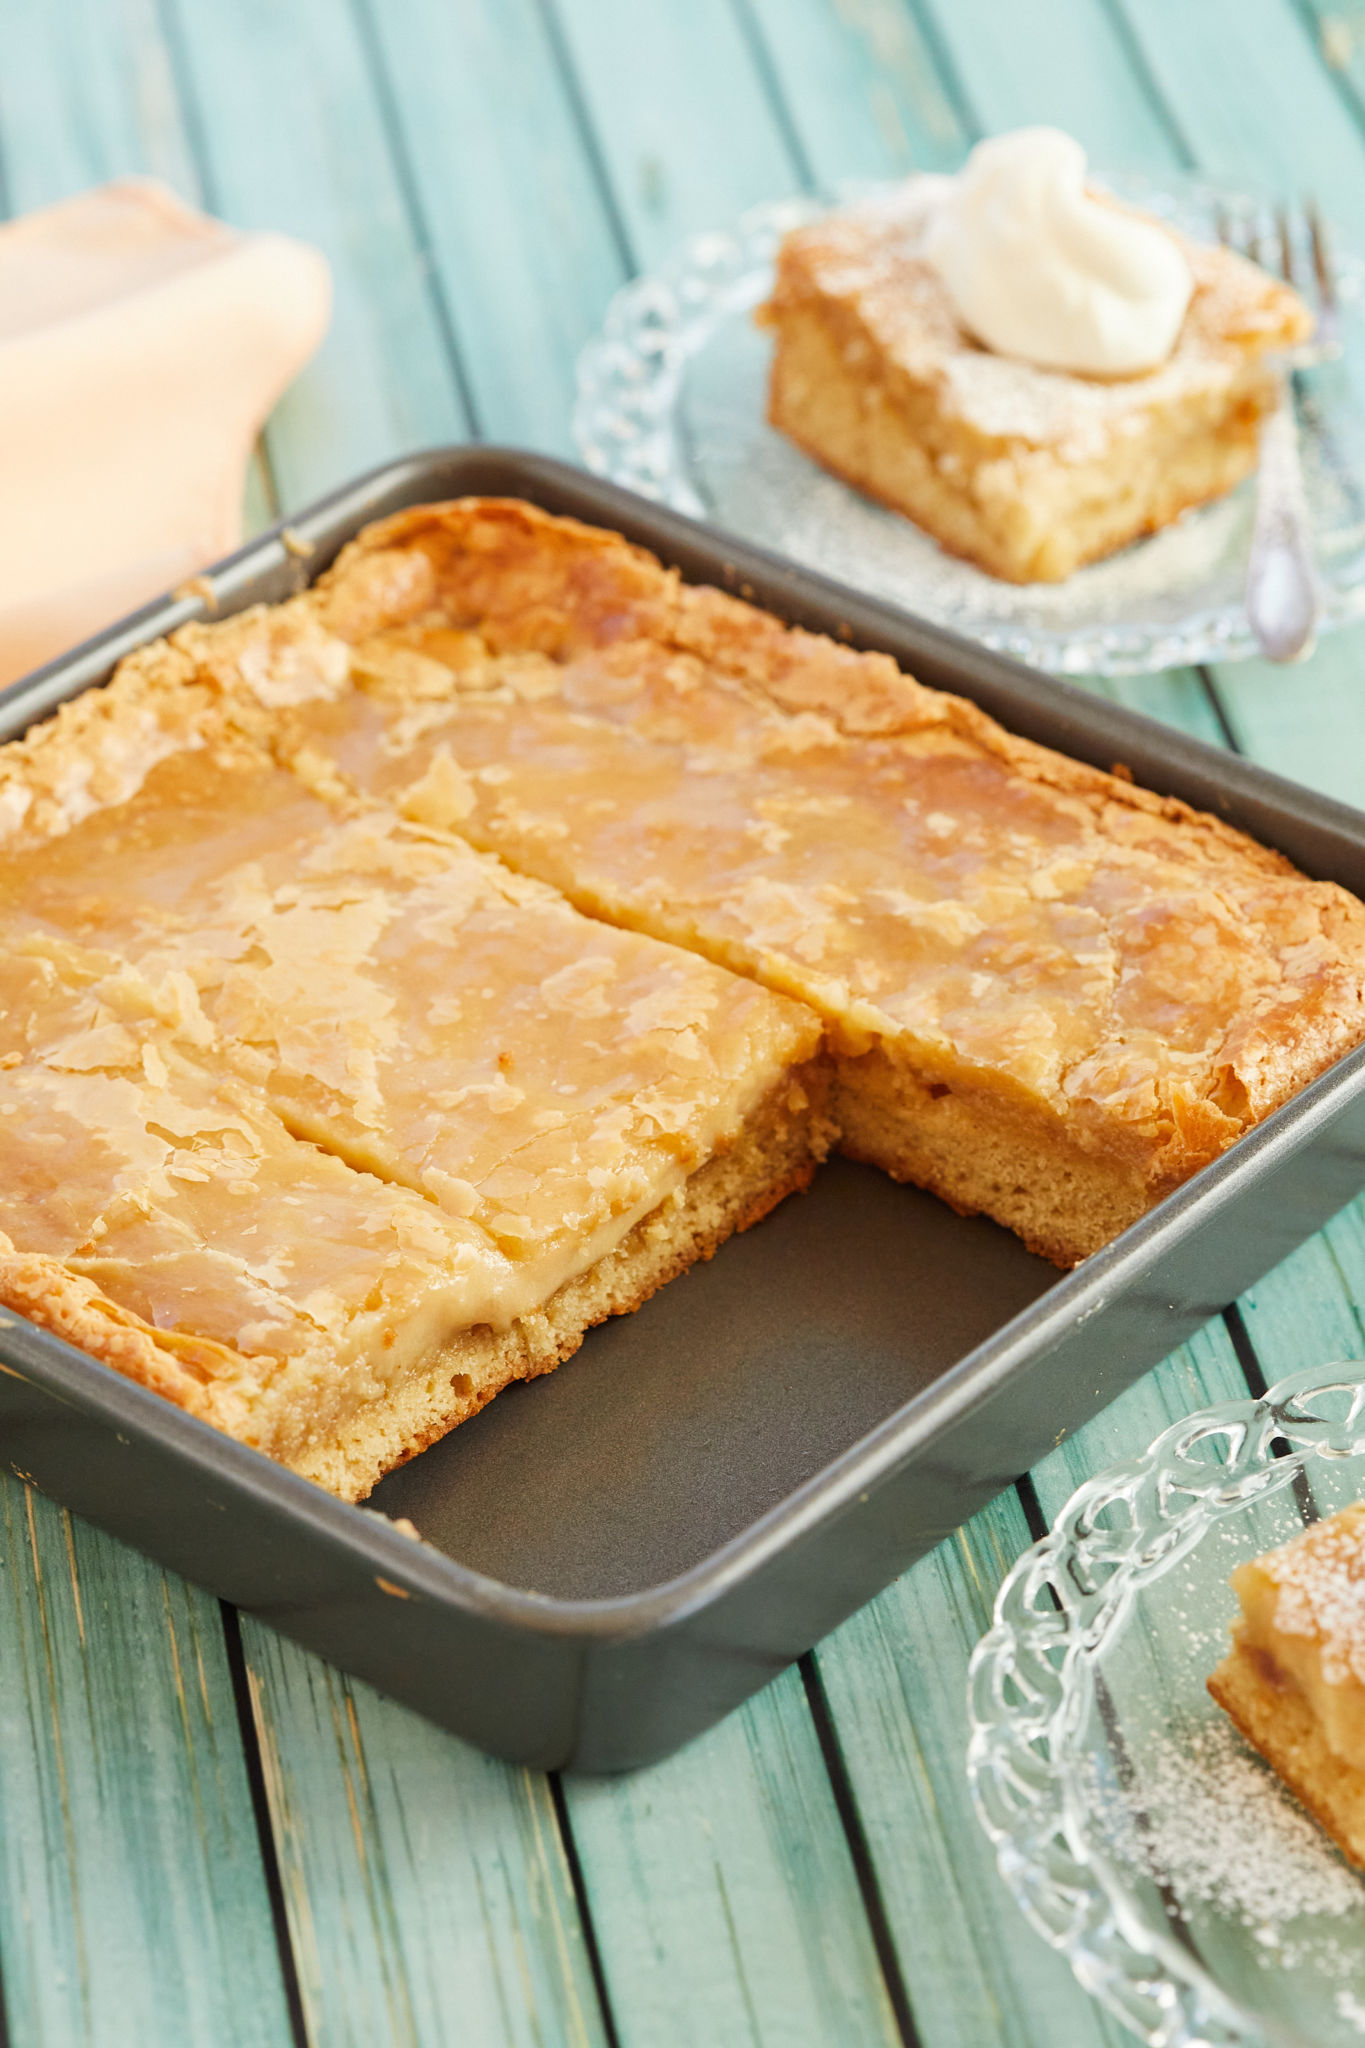 A tray of my Gooey Butter Cake recipe, with slices removed.